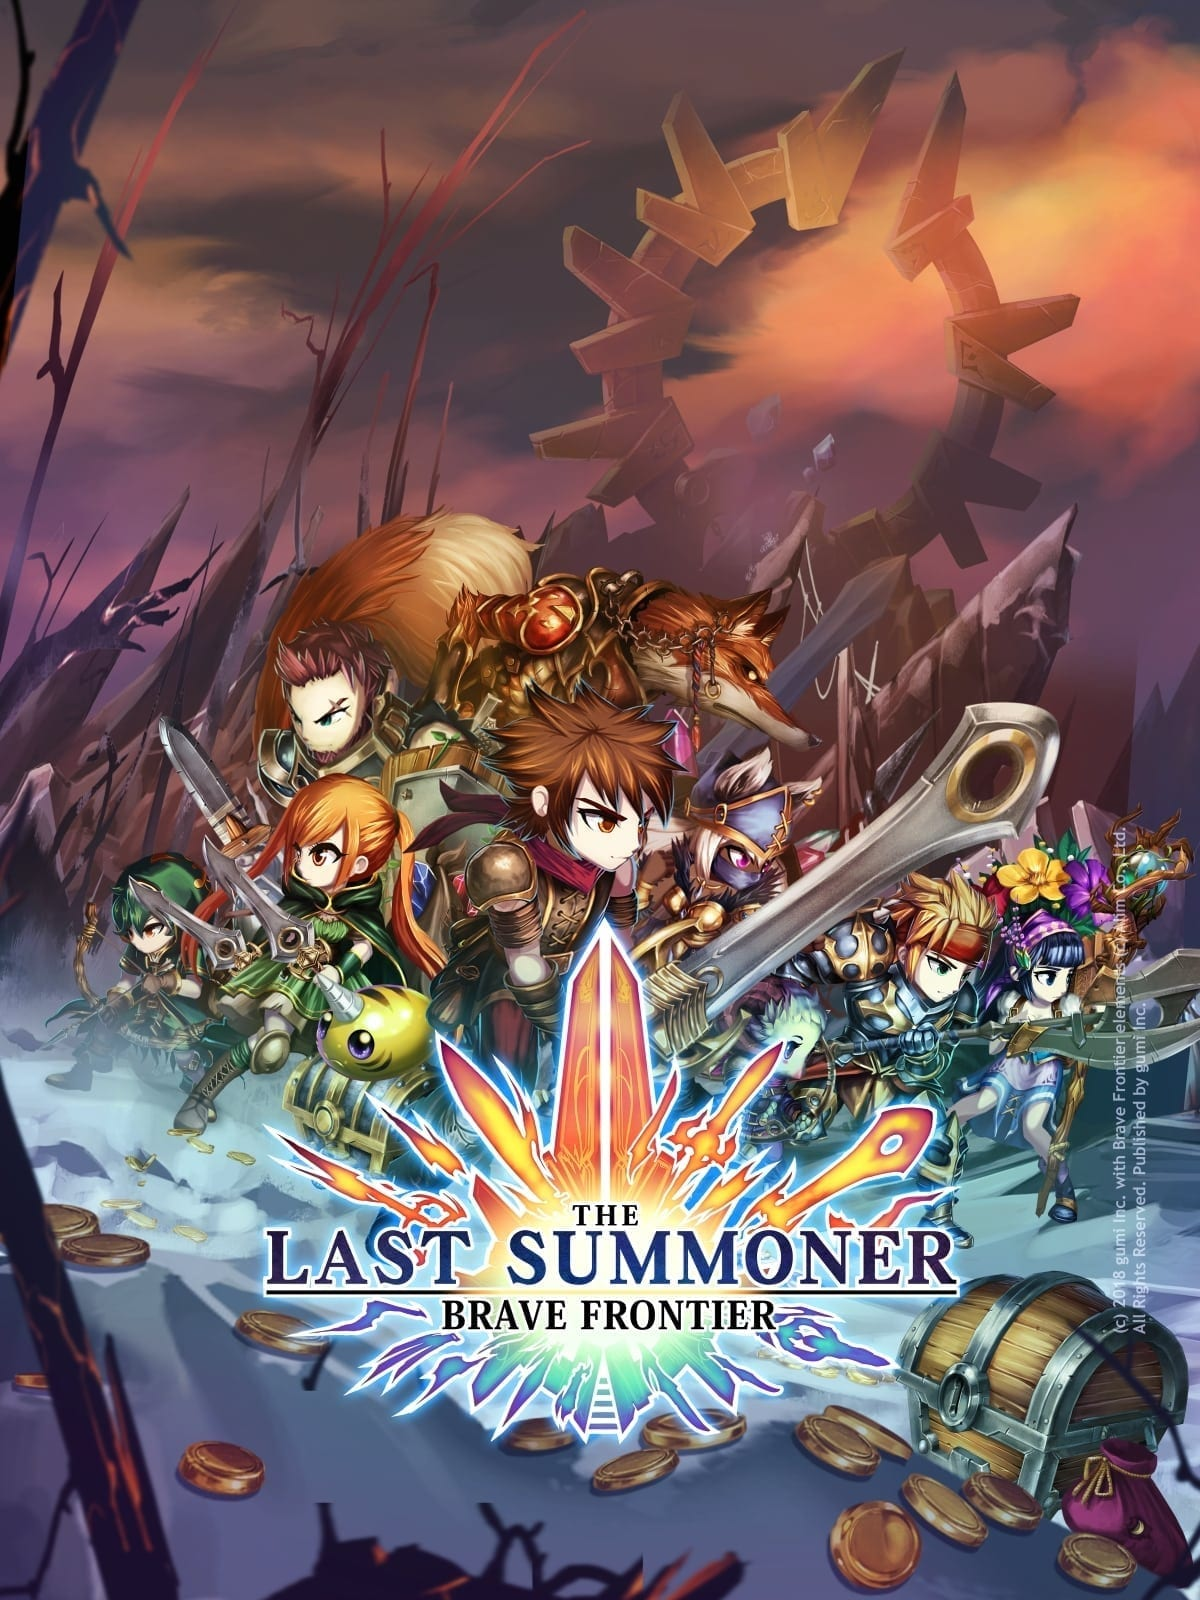 [Soft Launch] Brave Frontier: Last Summoner [iOS & Android]